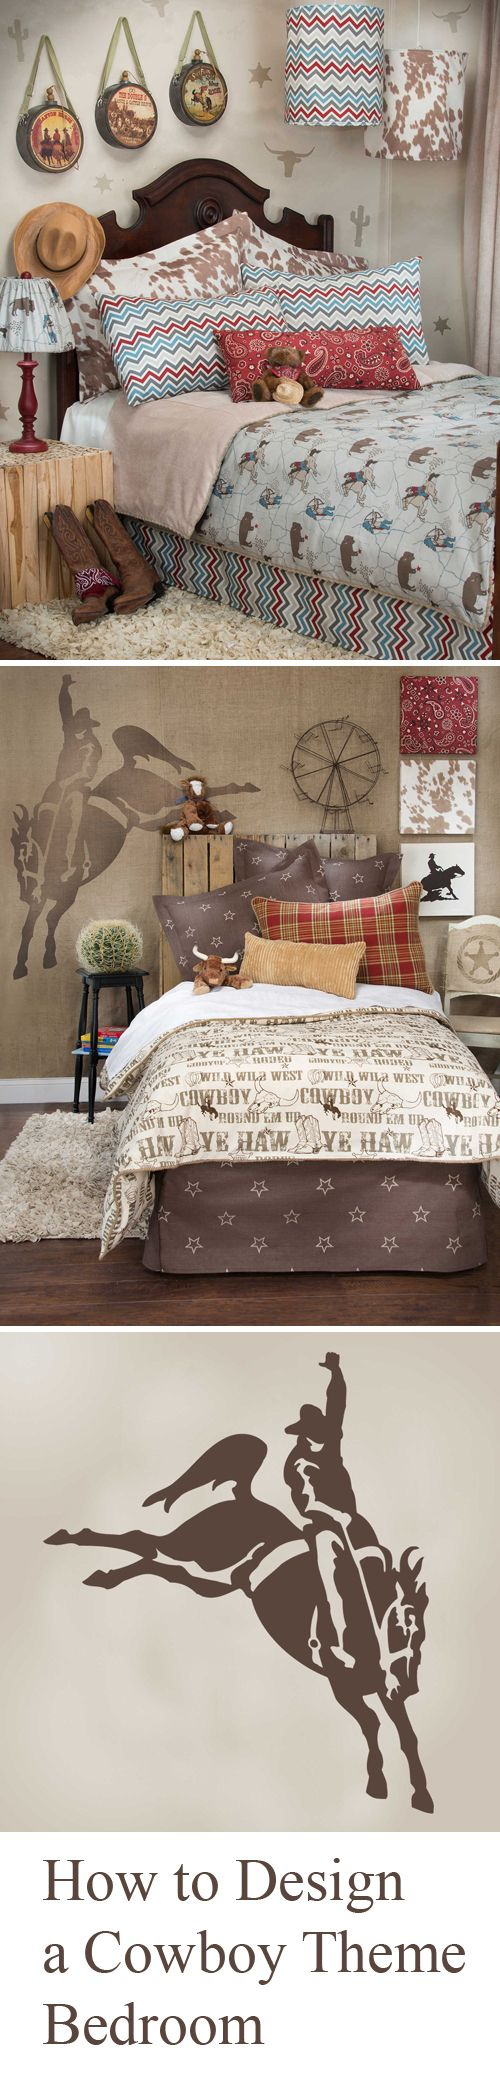 cowboy bedroom theme bedrooms bedroom ideas nursery ideas cowboy